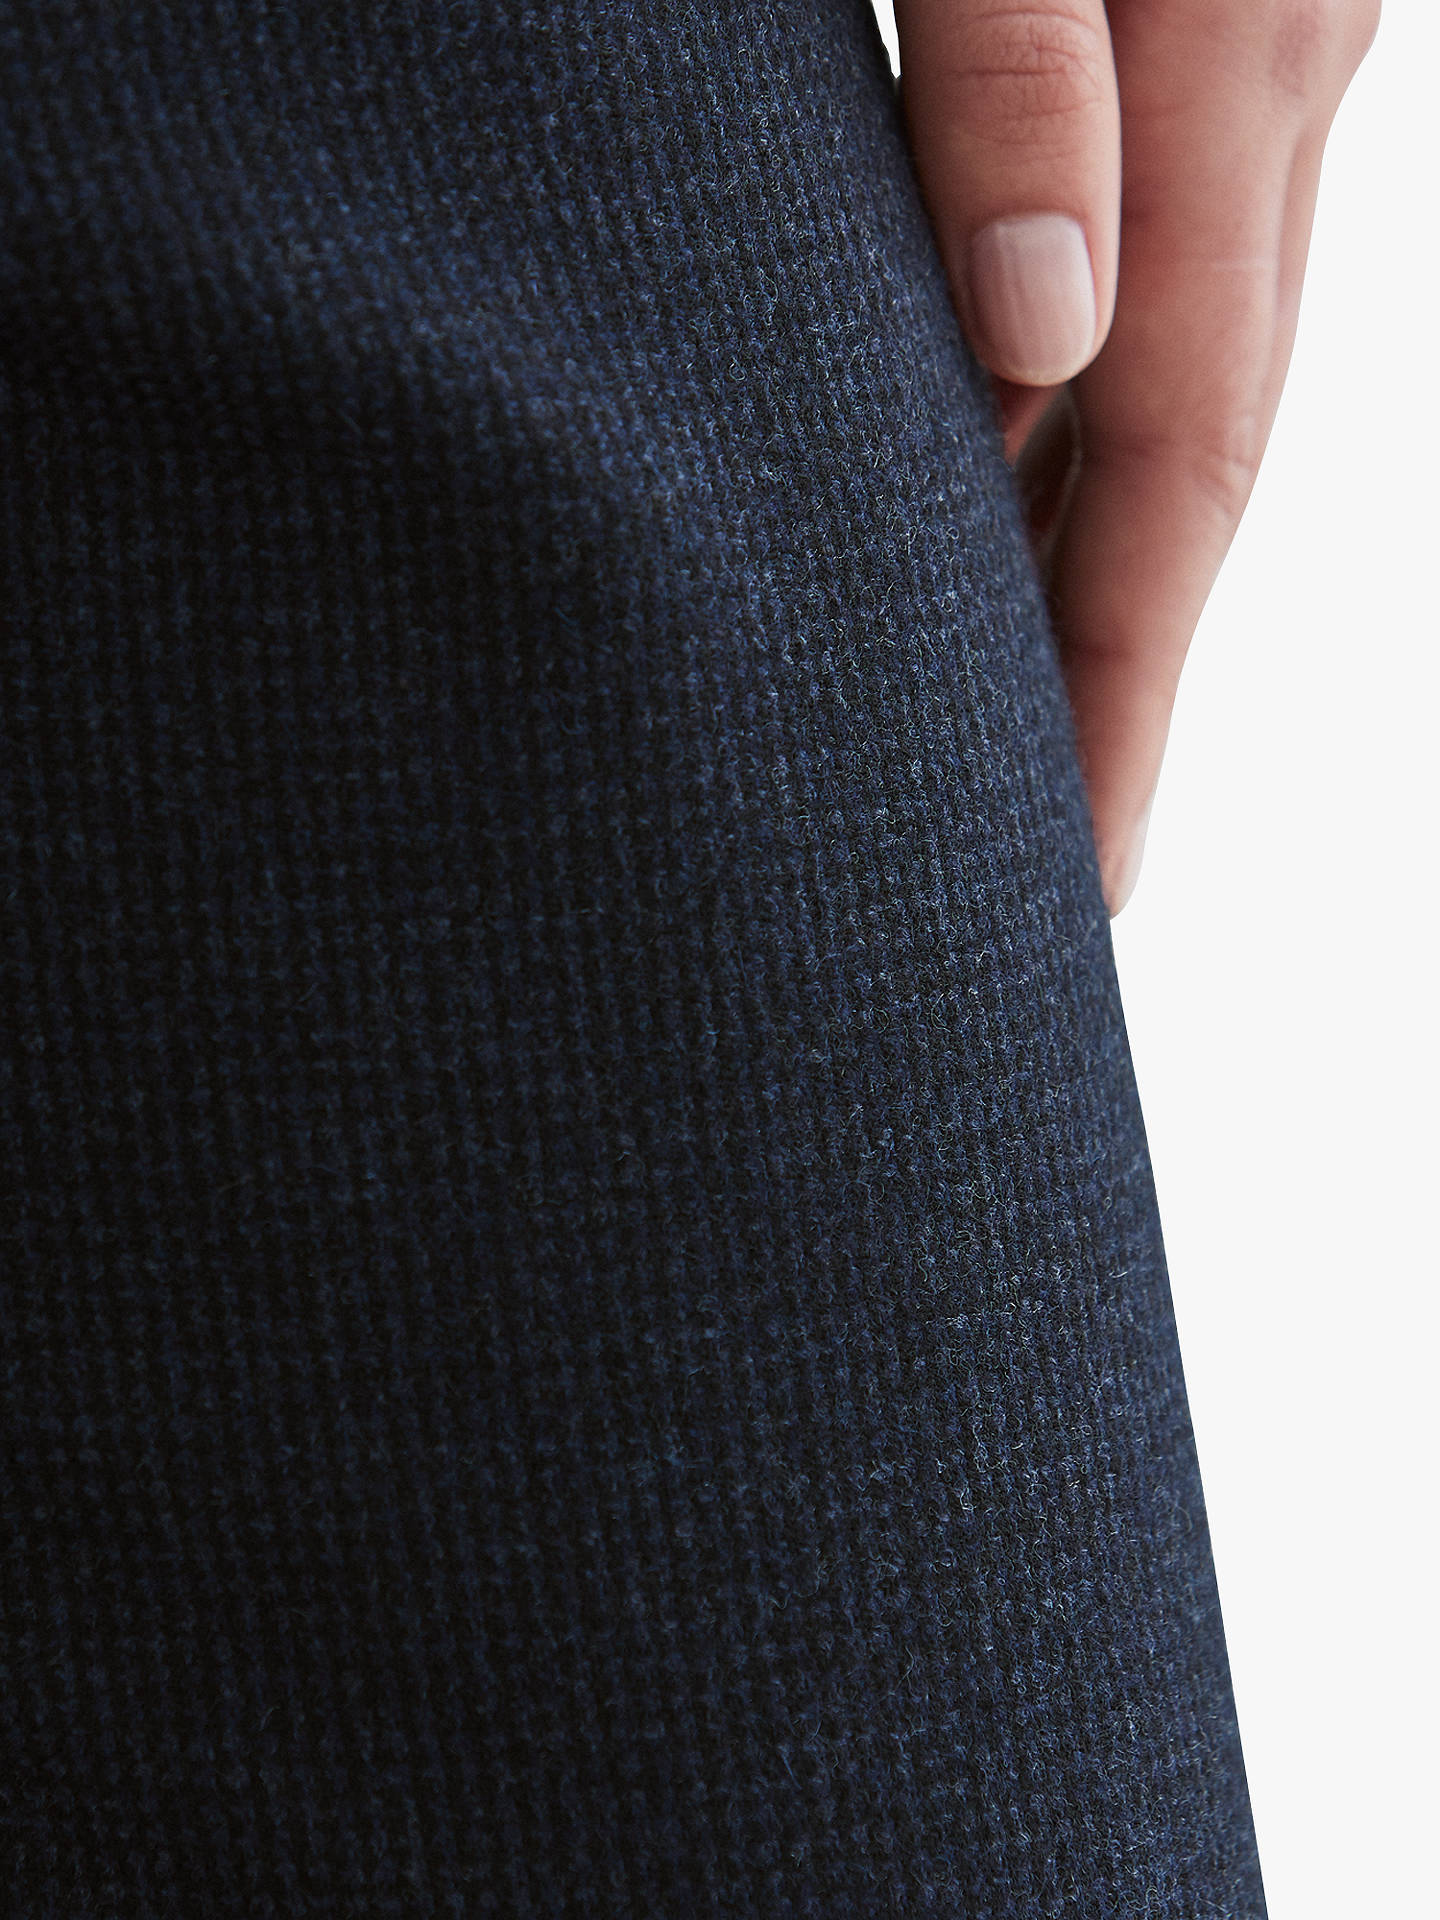 BuyToast Houndstooth Wool Pull On Trouser, Dark Navy, 12 Online at johnlewis.com